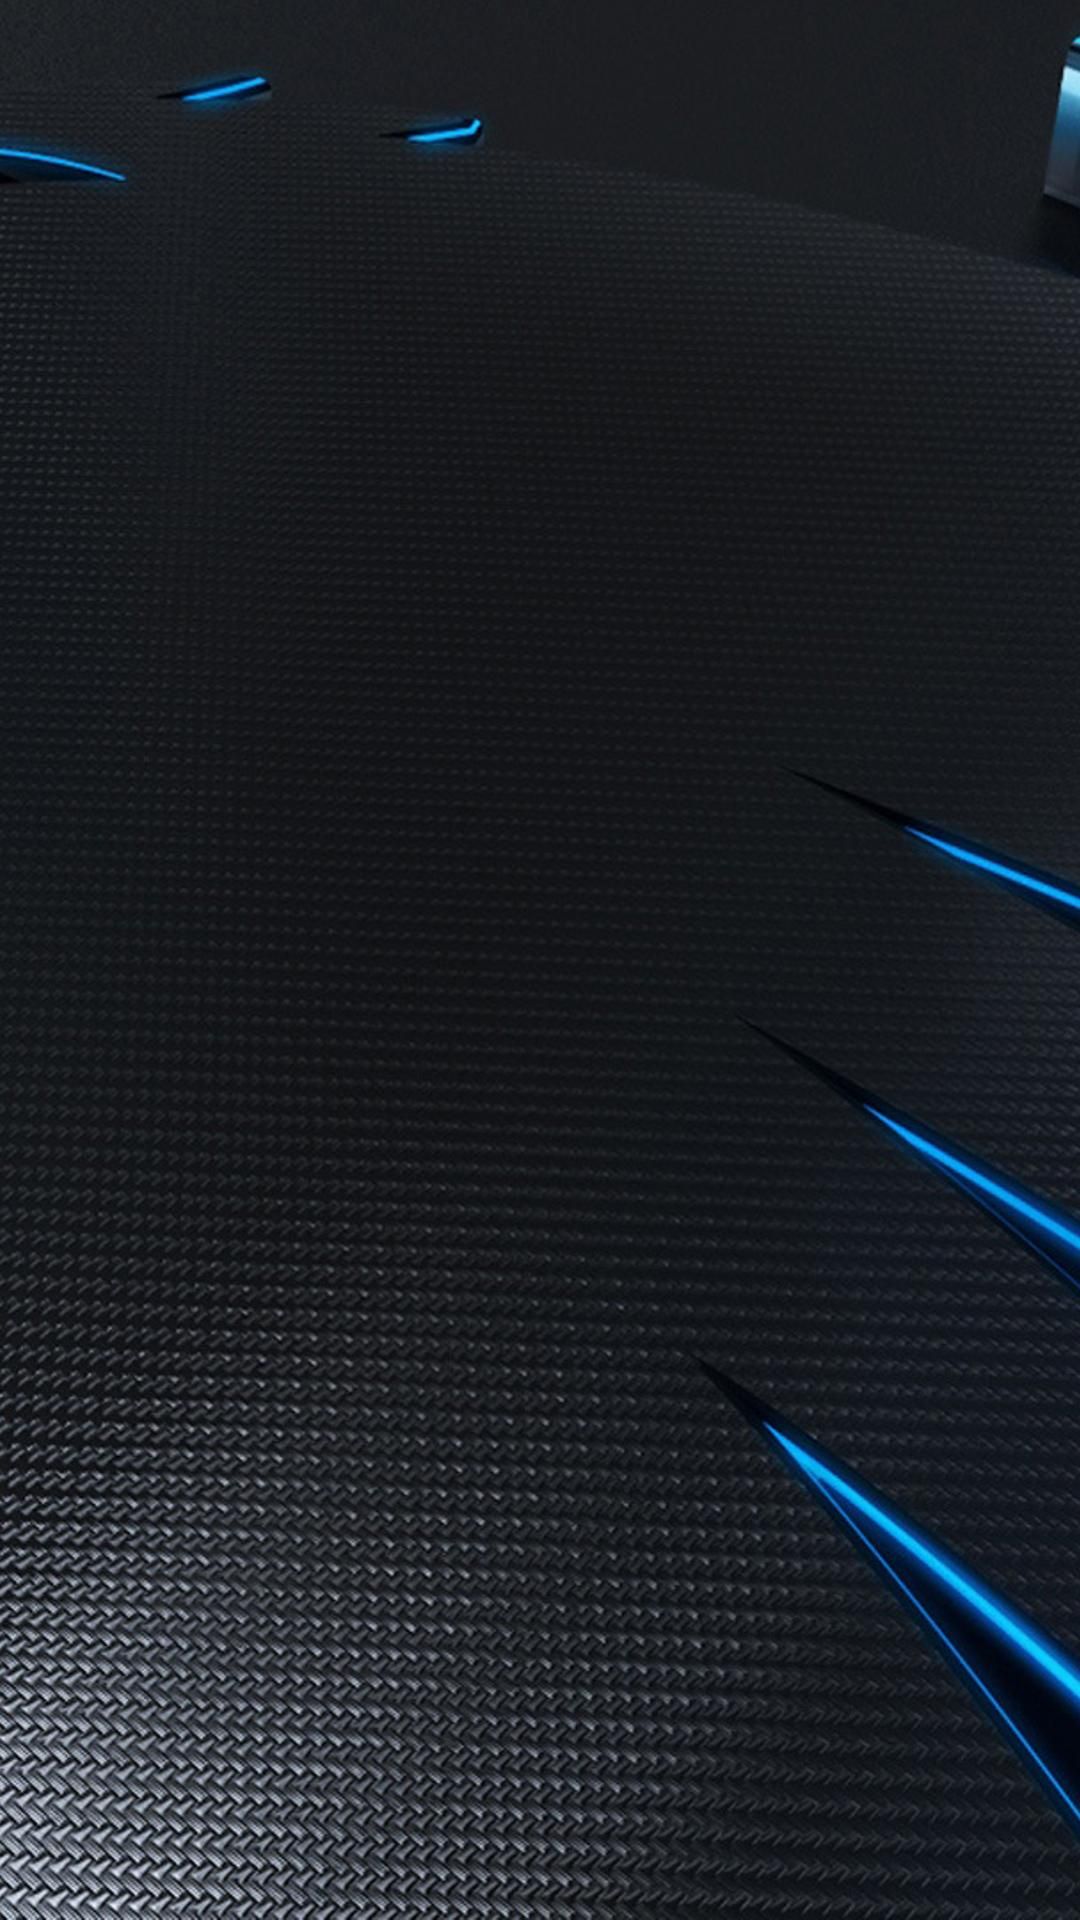 Abstract Black And Blue HD Wallpaper Download 1080x1920